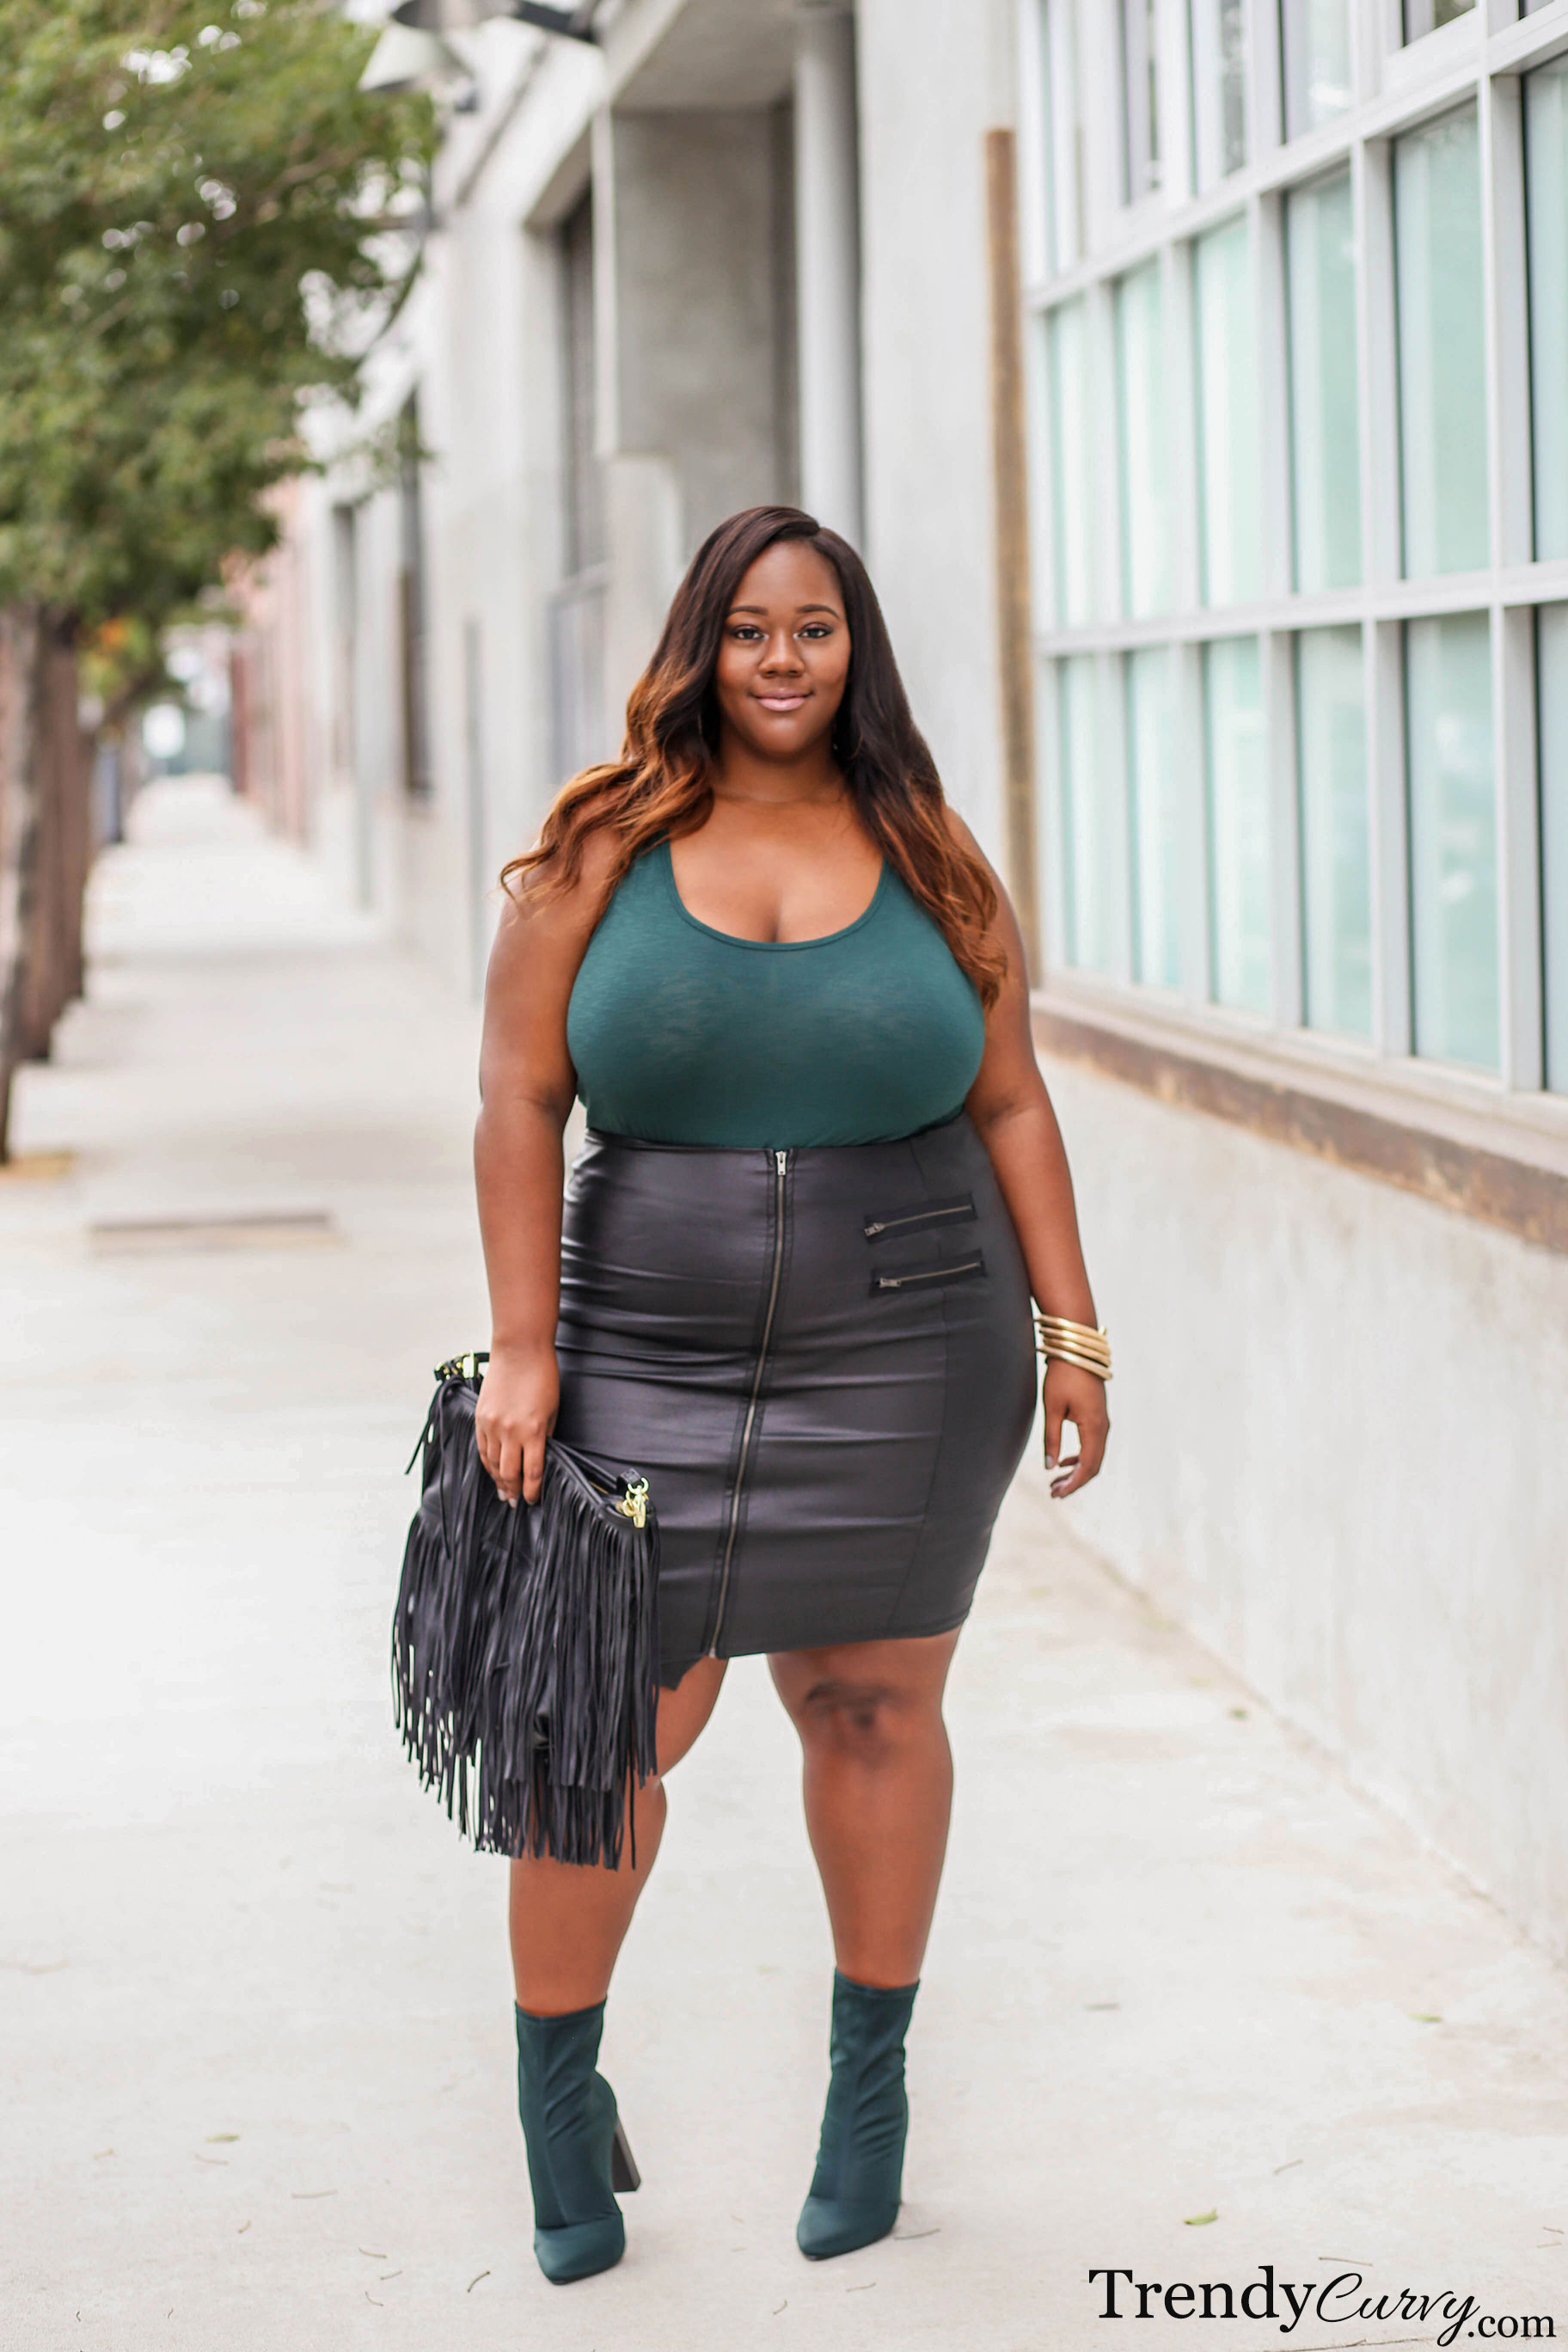 J s everyday fashion on twitter hateful comment re - It S Time To Break Out The Leather Skirts And Booties These Are Two Items That Signify Fall Fashion Yet Are Still Fitting To Be Worn Now